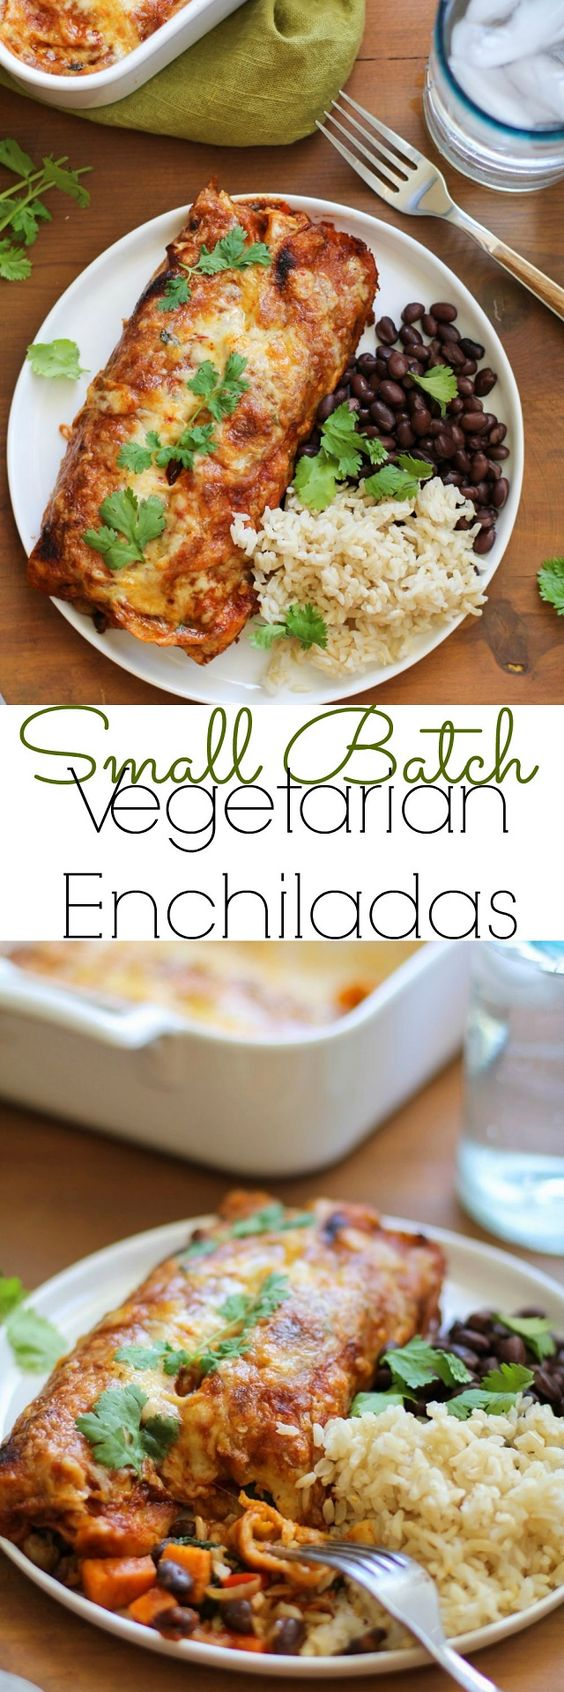 Small Batch Sweet Potato and Black Bean Enchiladas Recipe via The Roasted Root - the perfect vegetarian dinner for two!